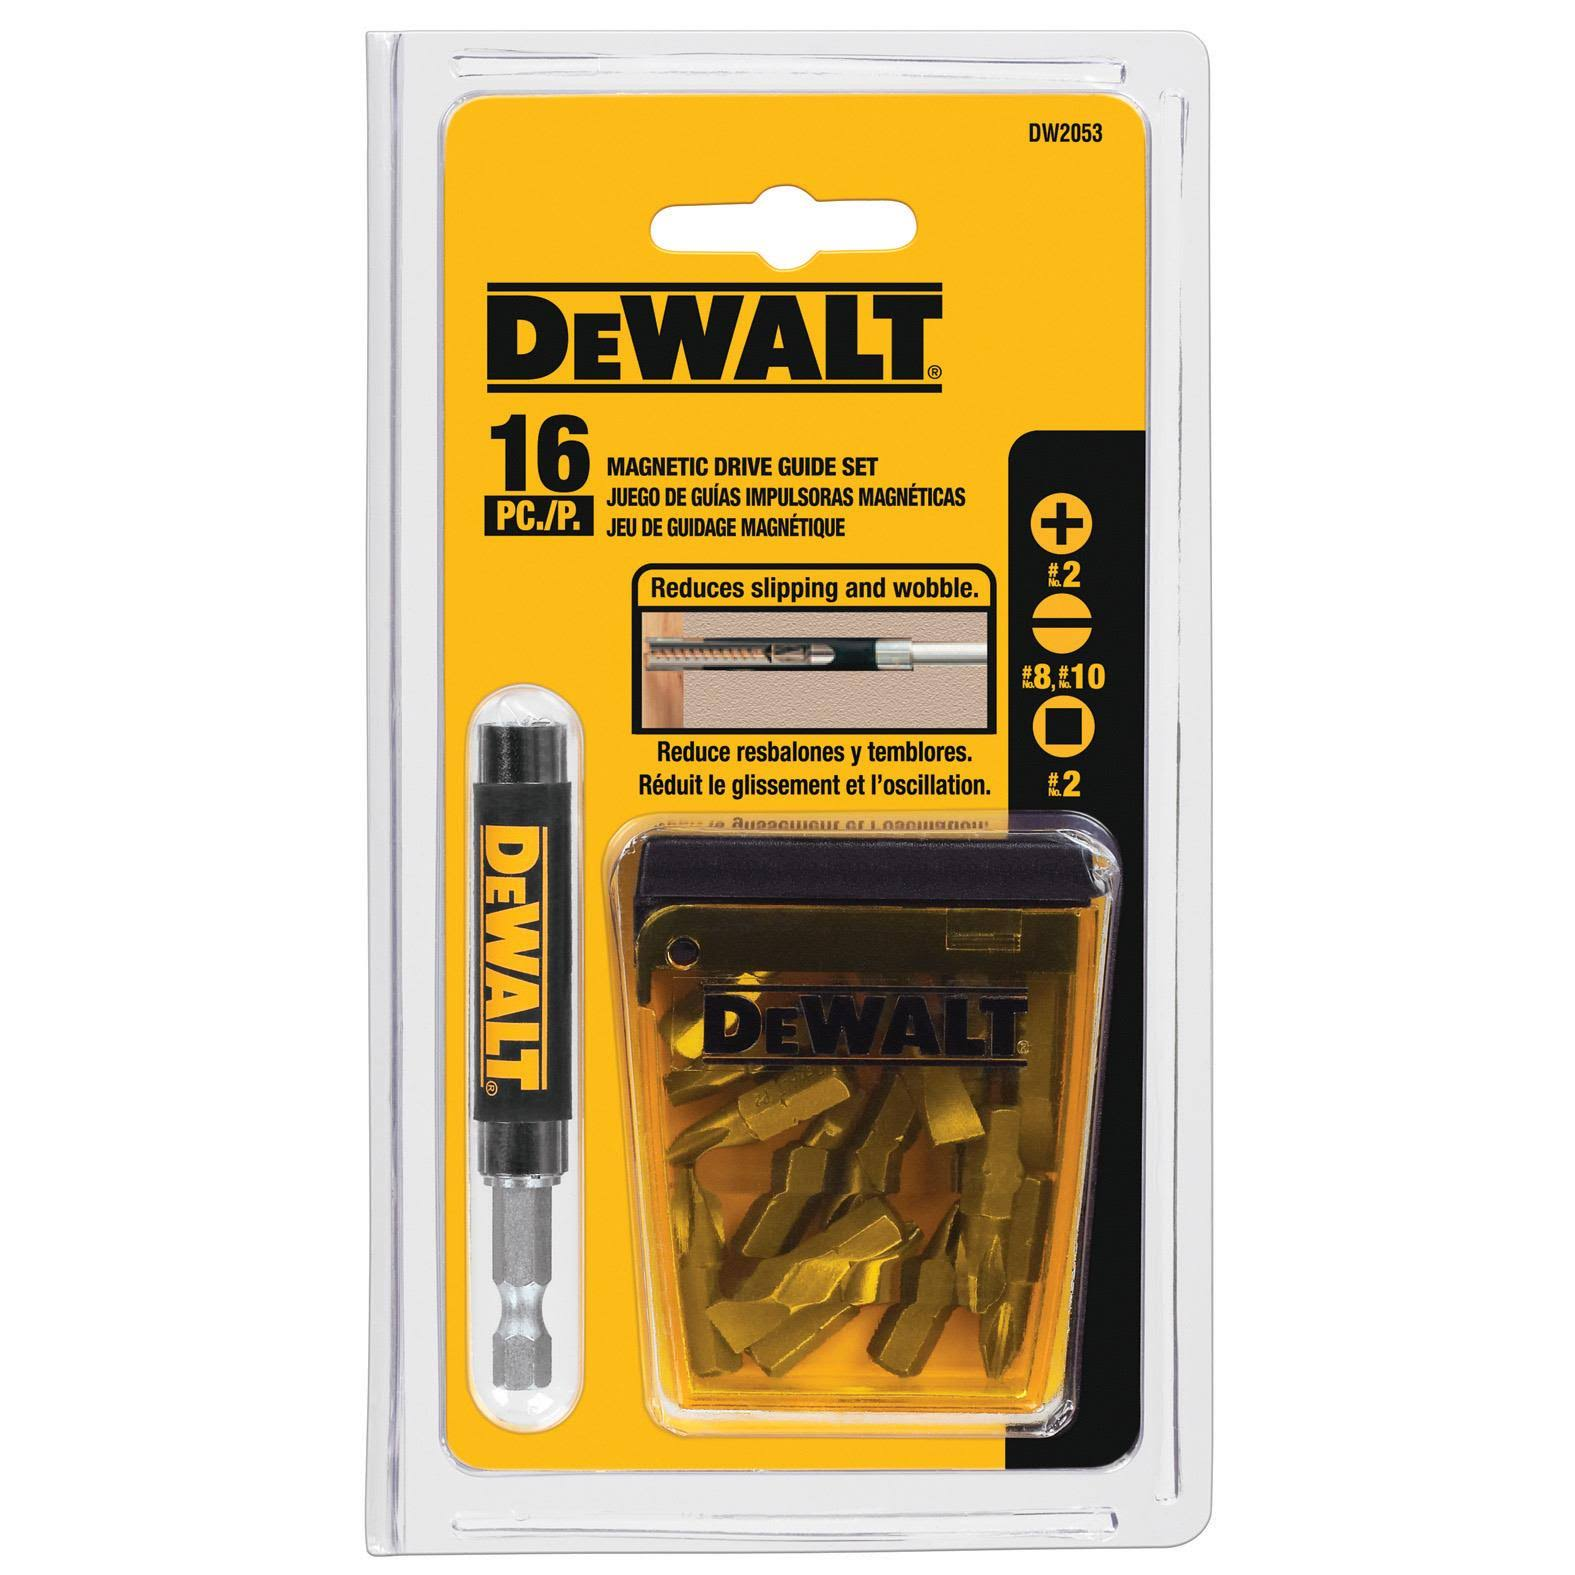 Dewalt Accessories Magnetic Driver Guide Set - 16pcs